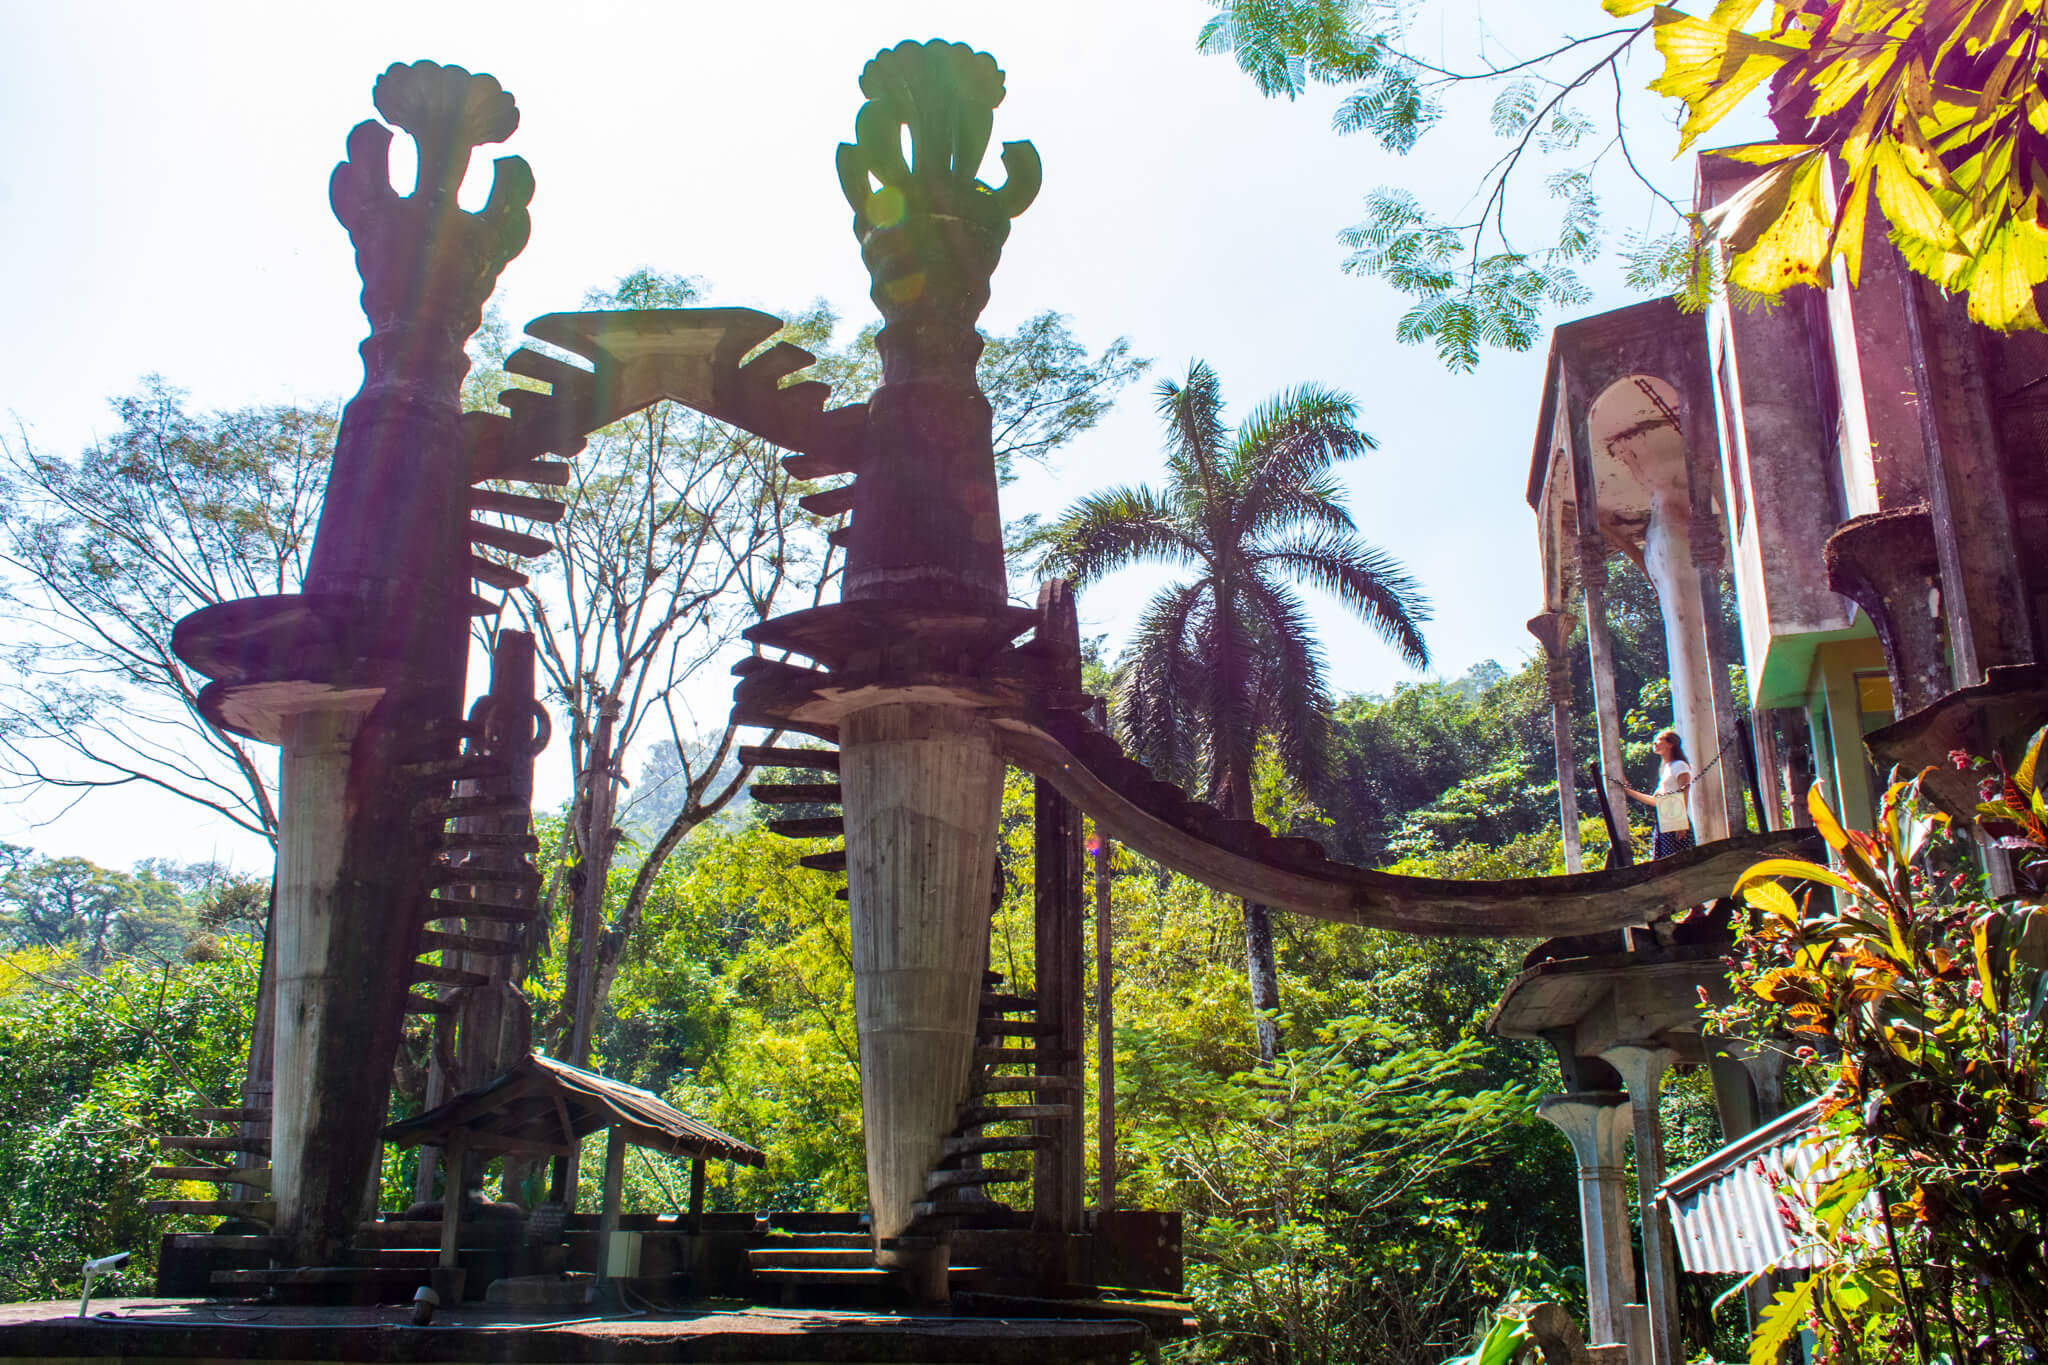 Surrealist sculpture in jungle at garden of Los Pozas de Xilitla, Mexico.